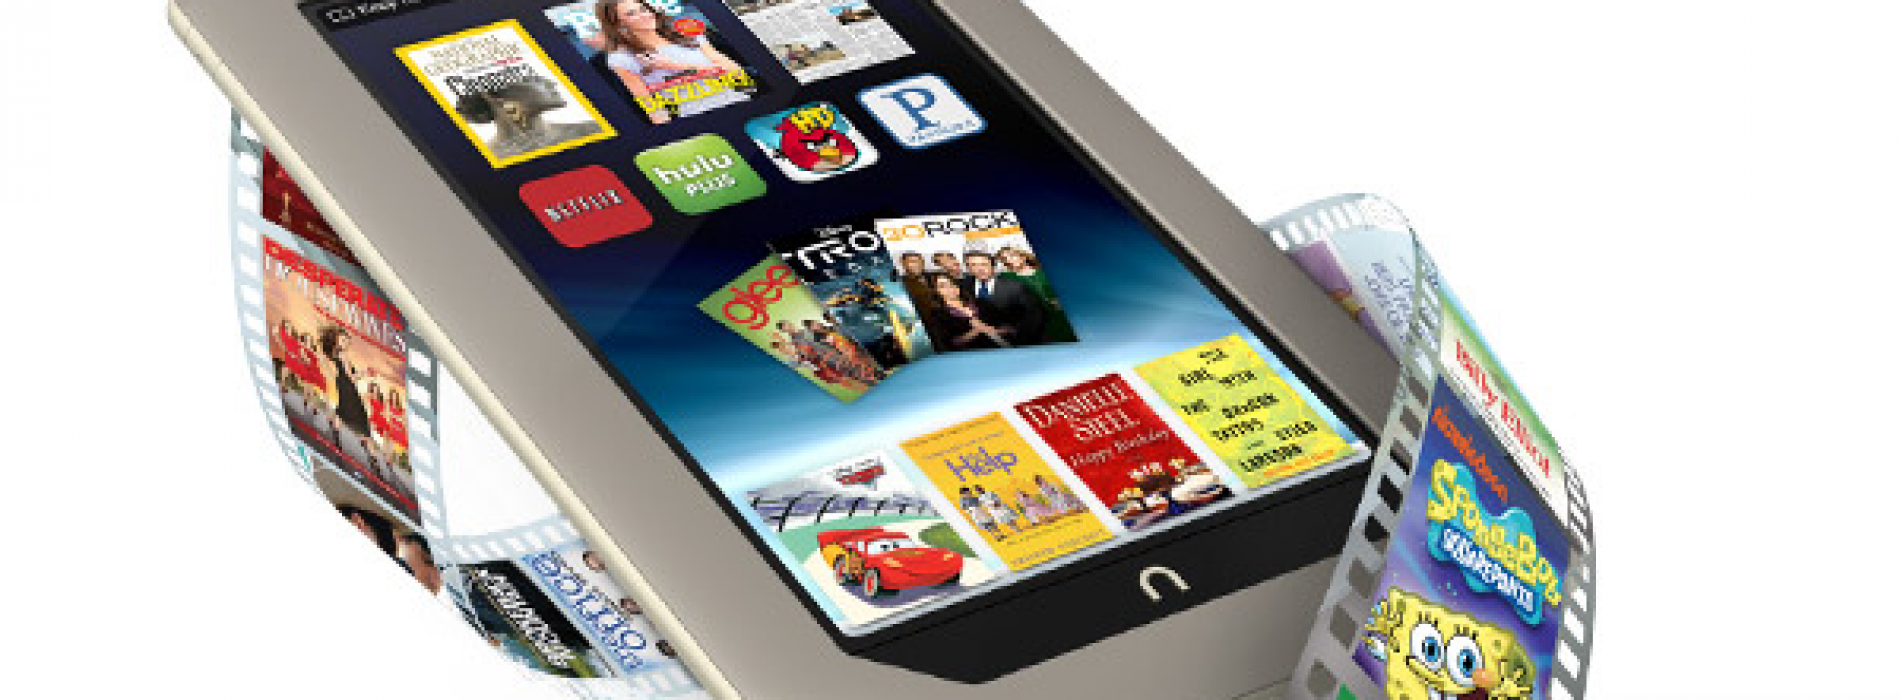 Nook Tablet starts shipping a day early